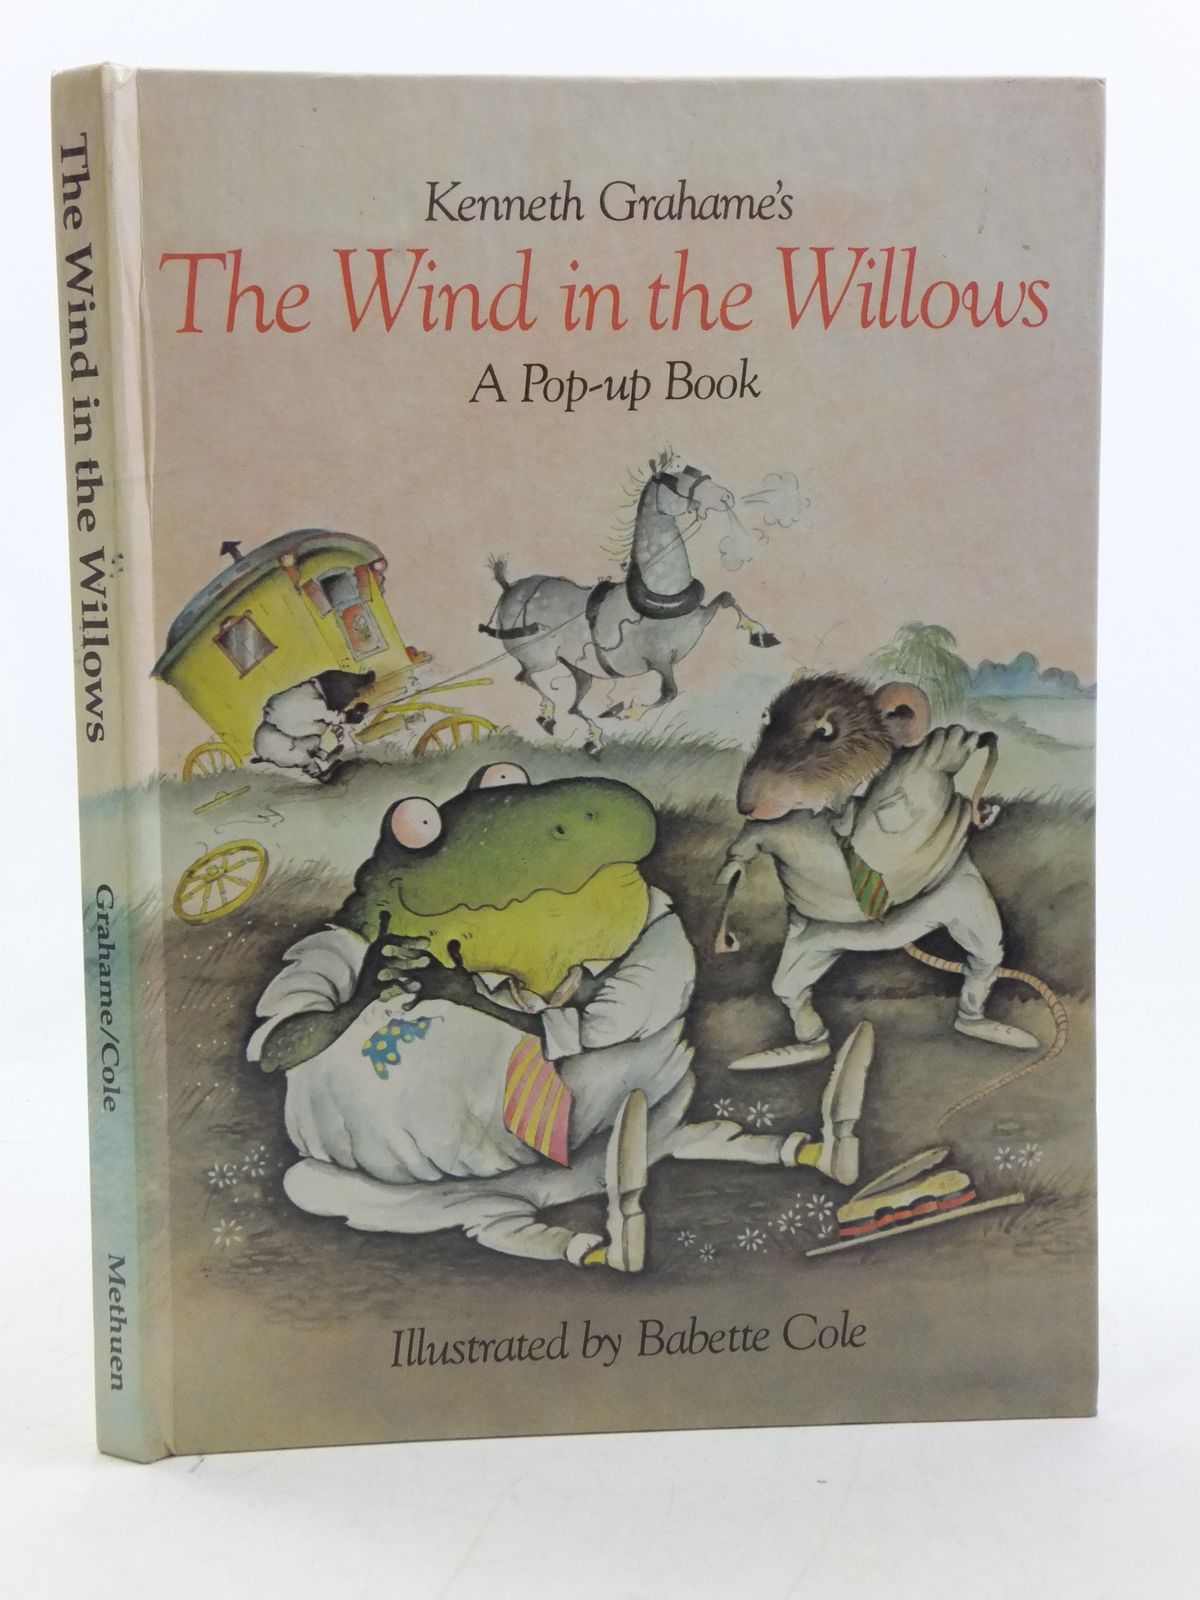 Photo of THE WIND IN THE WILLOWS A POP-UP BOOK